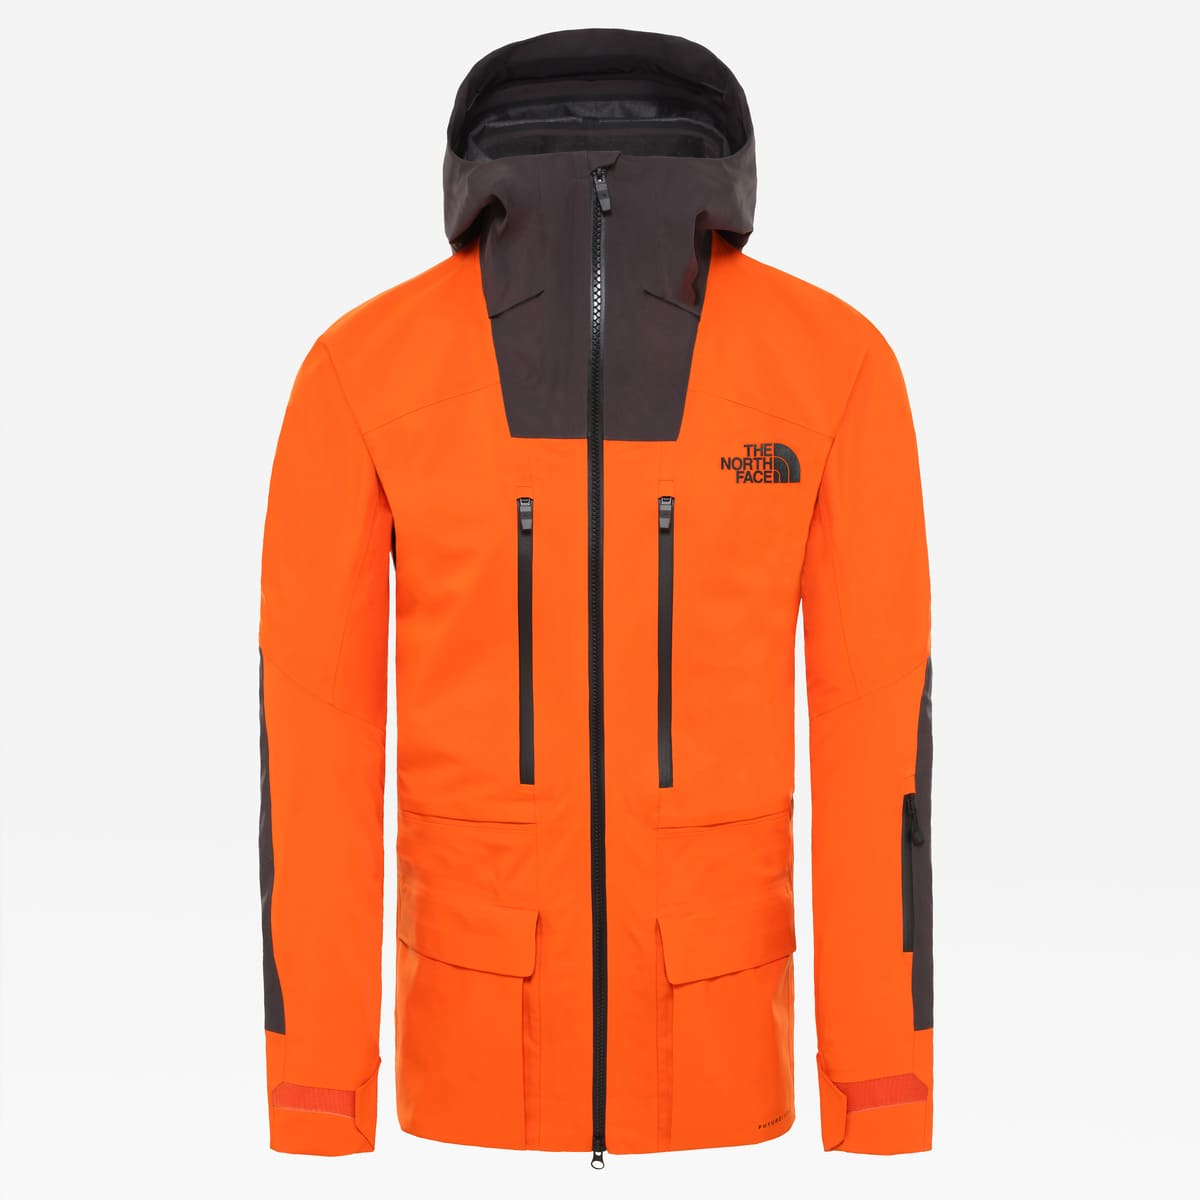 A-CAD Jacke Men - Front | The North Face Futurelight